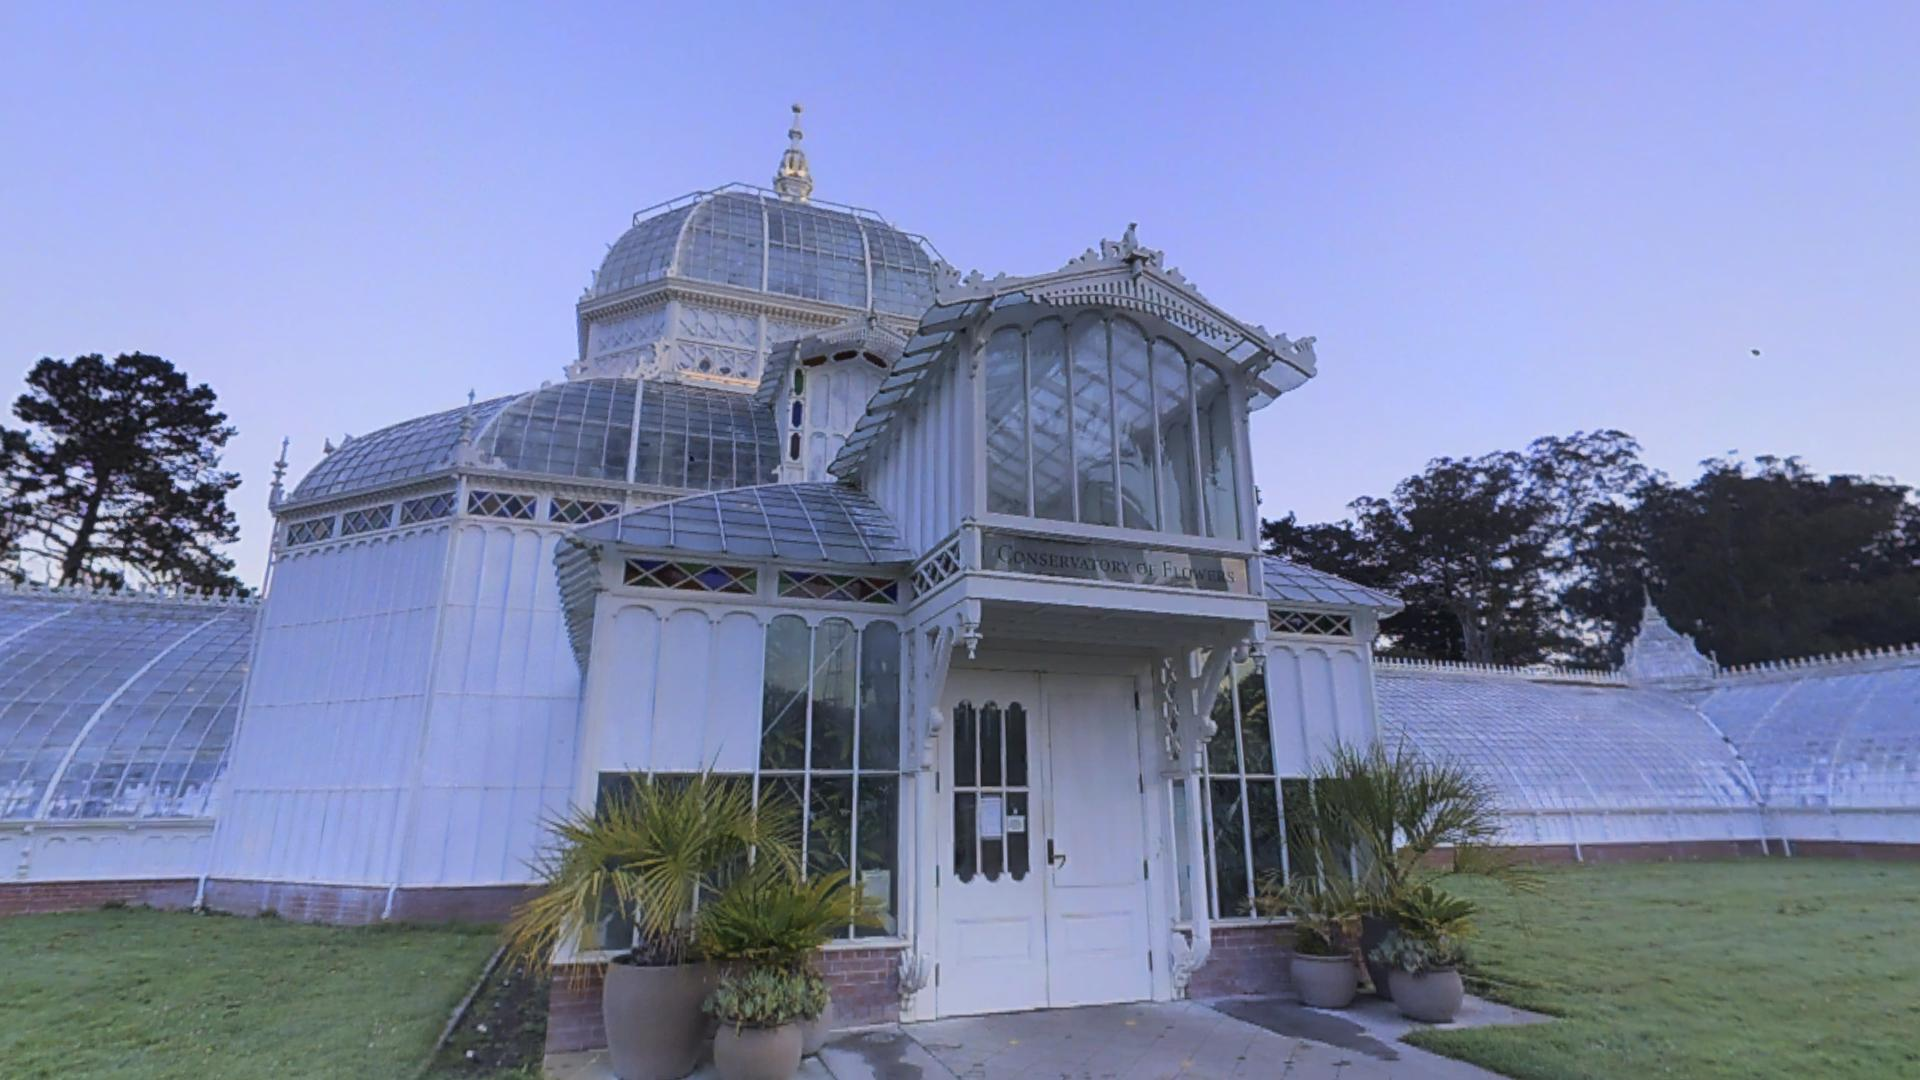 Conservatory of Flowers Exterior